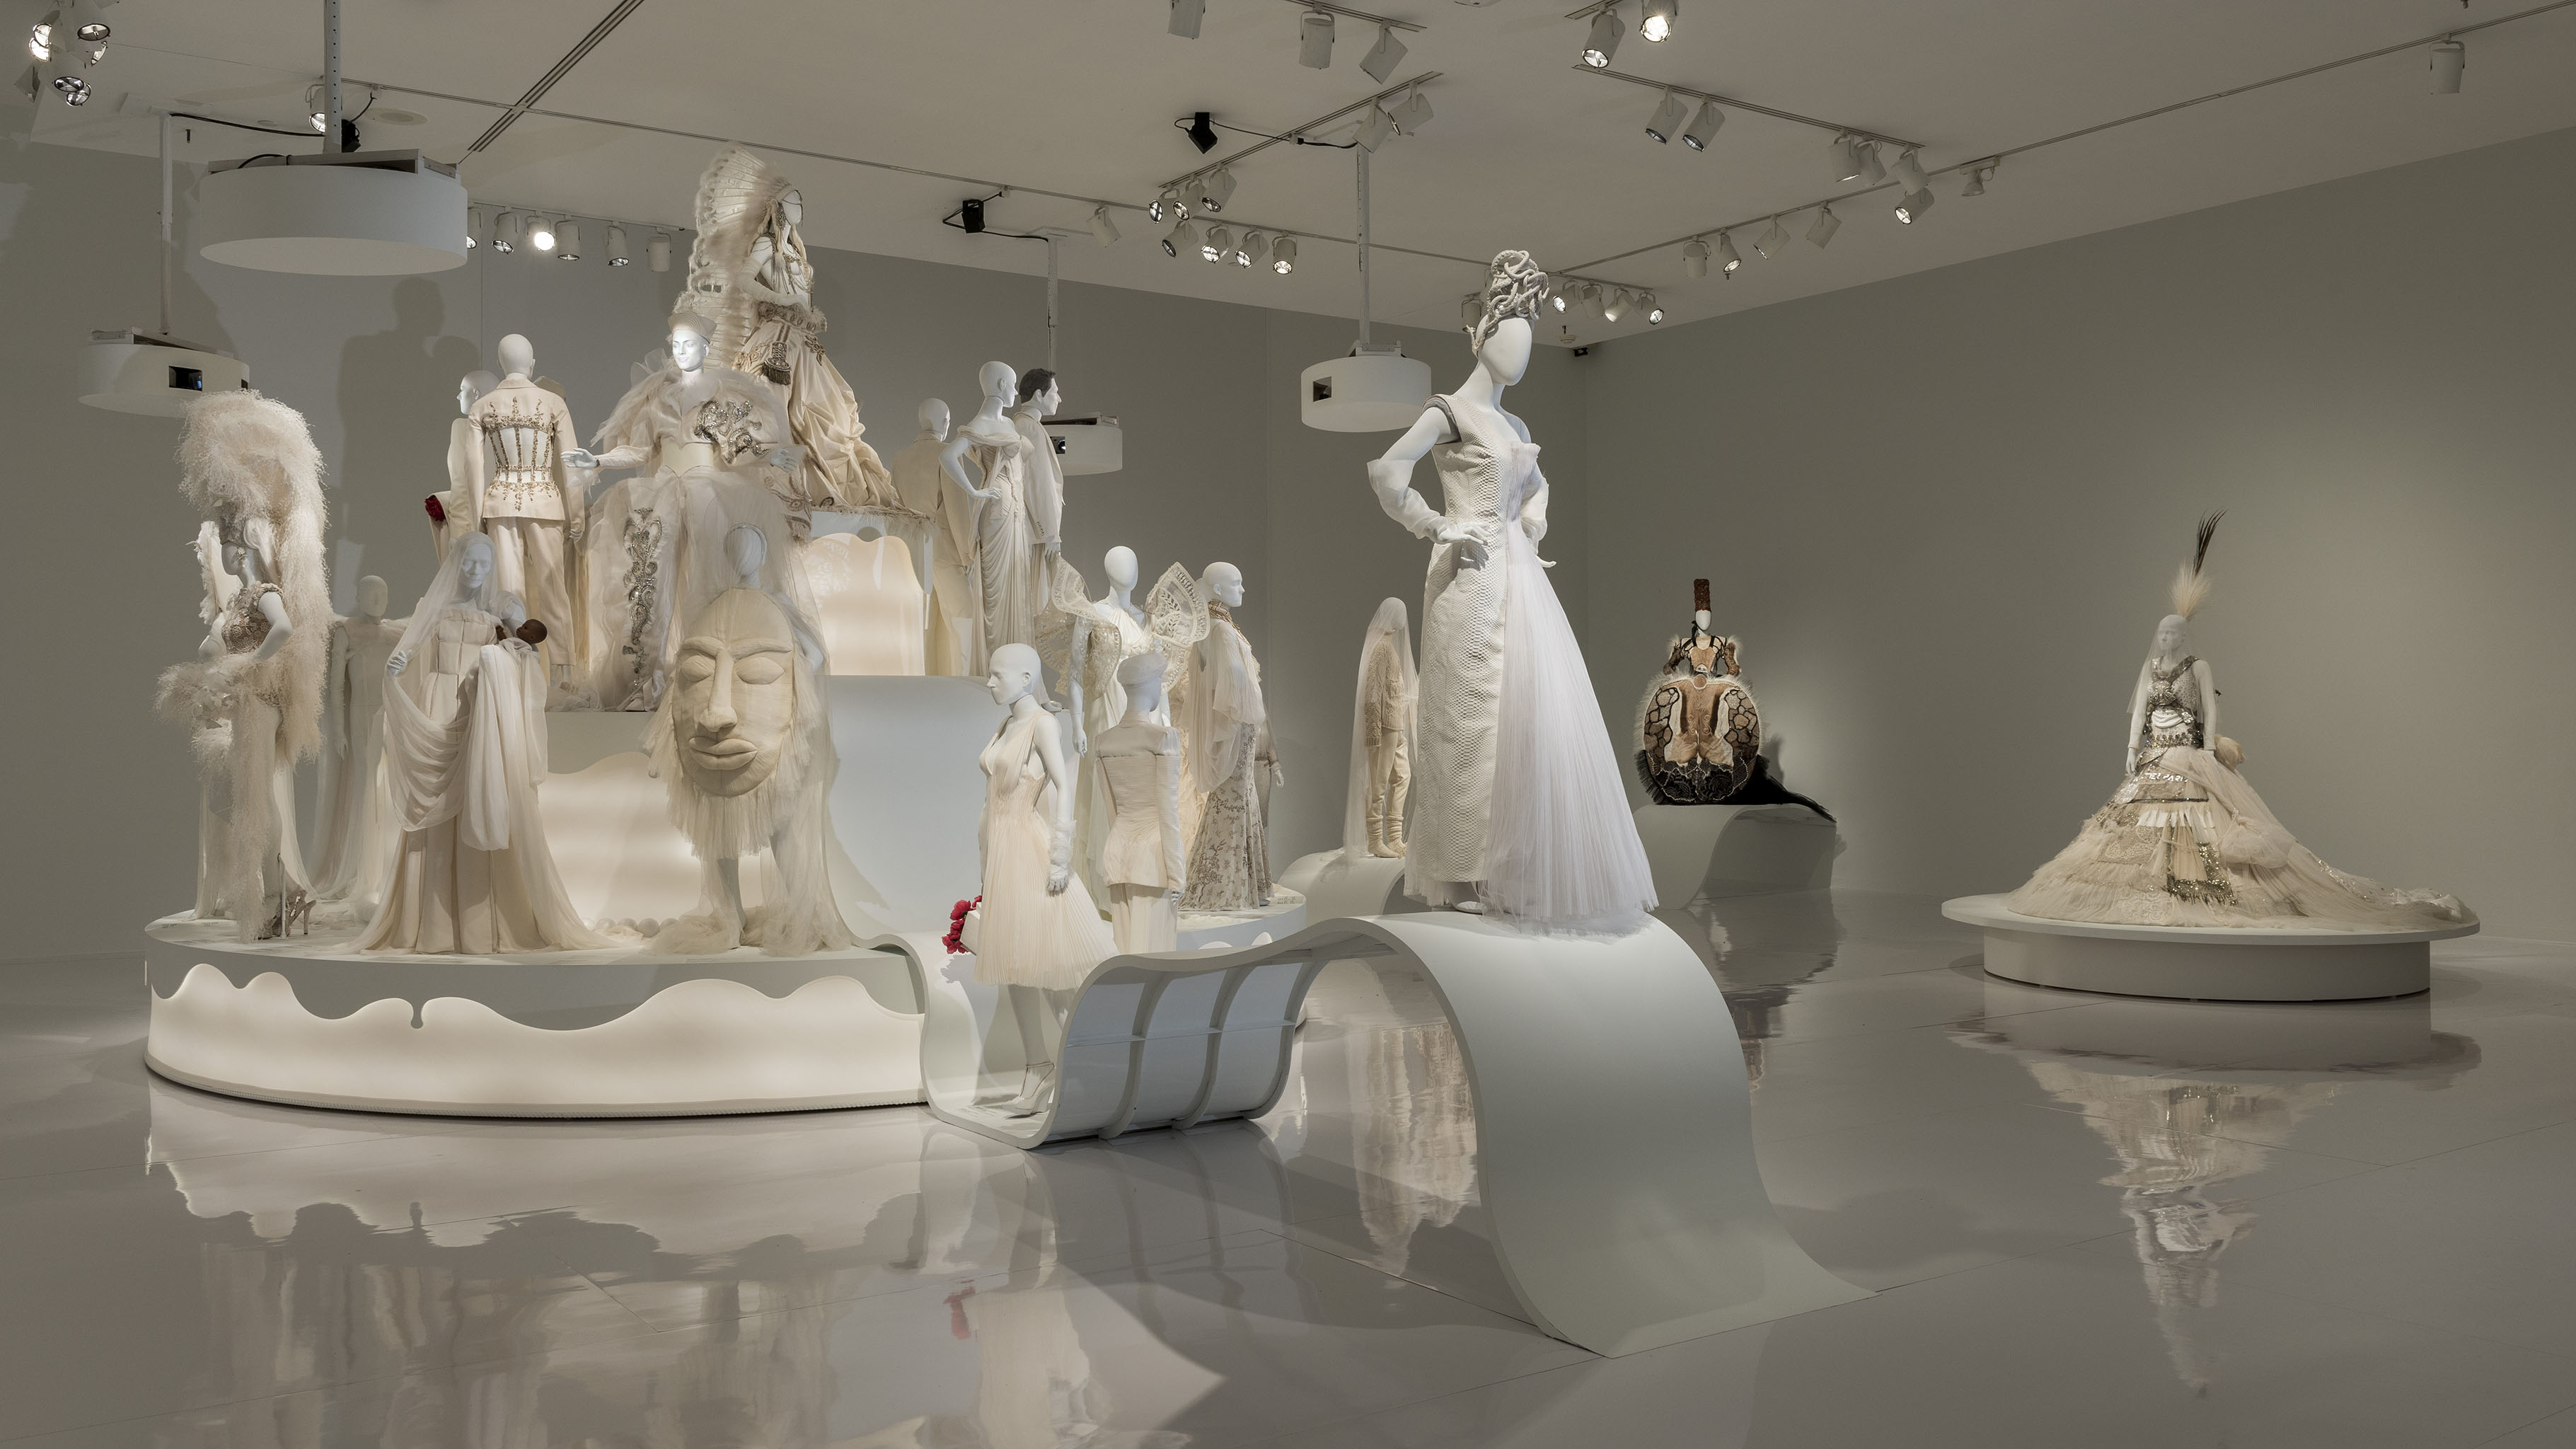 View of the exhibition Love Is Love: Wedding Bliss for All à la Jean Paul Gaultier, the Montreal Museum of Fine Arts, 2017.